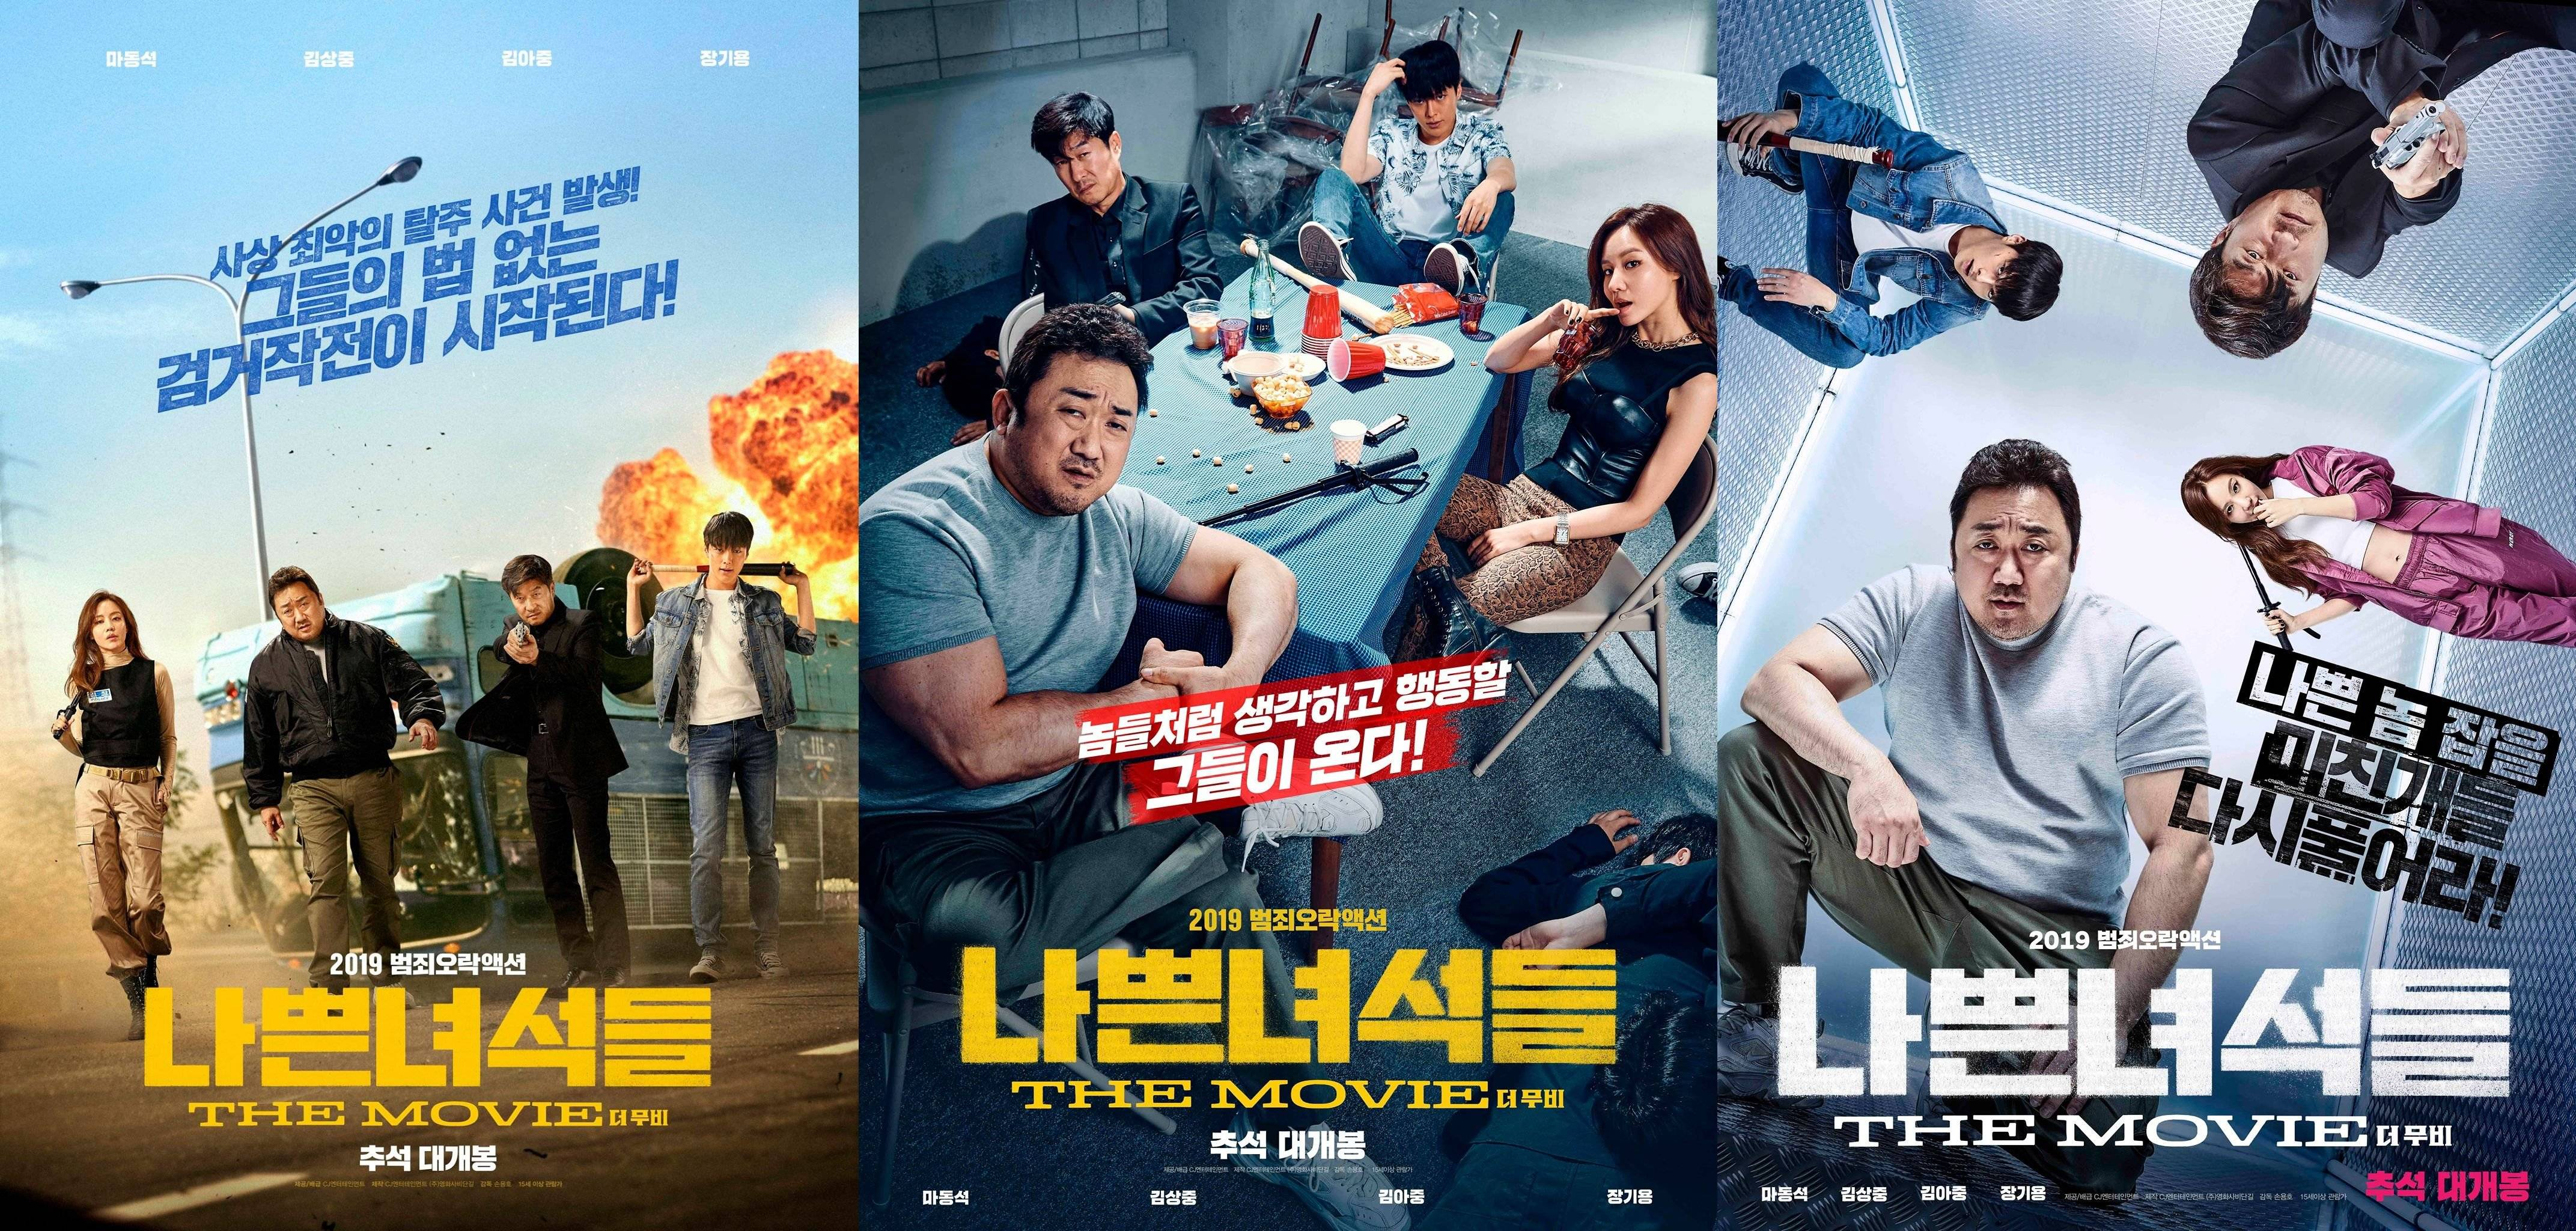 Photos New Posters Added for the Upcoming Korean Movie The Bad